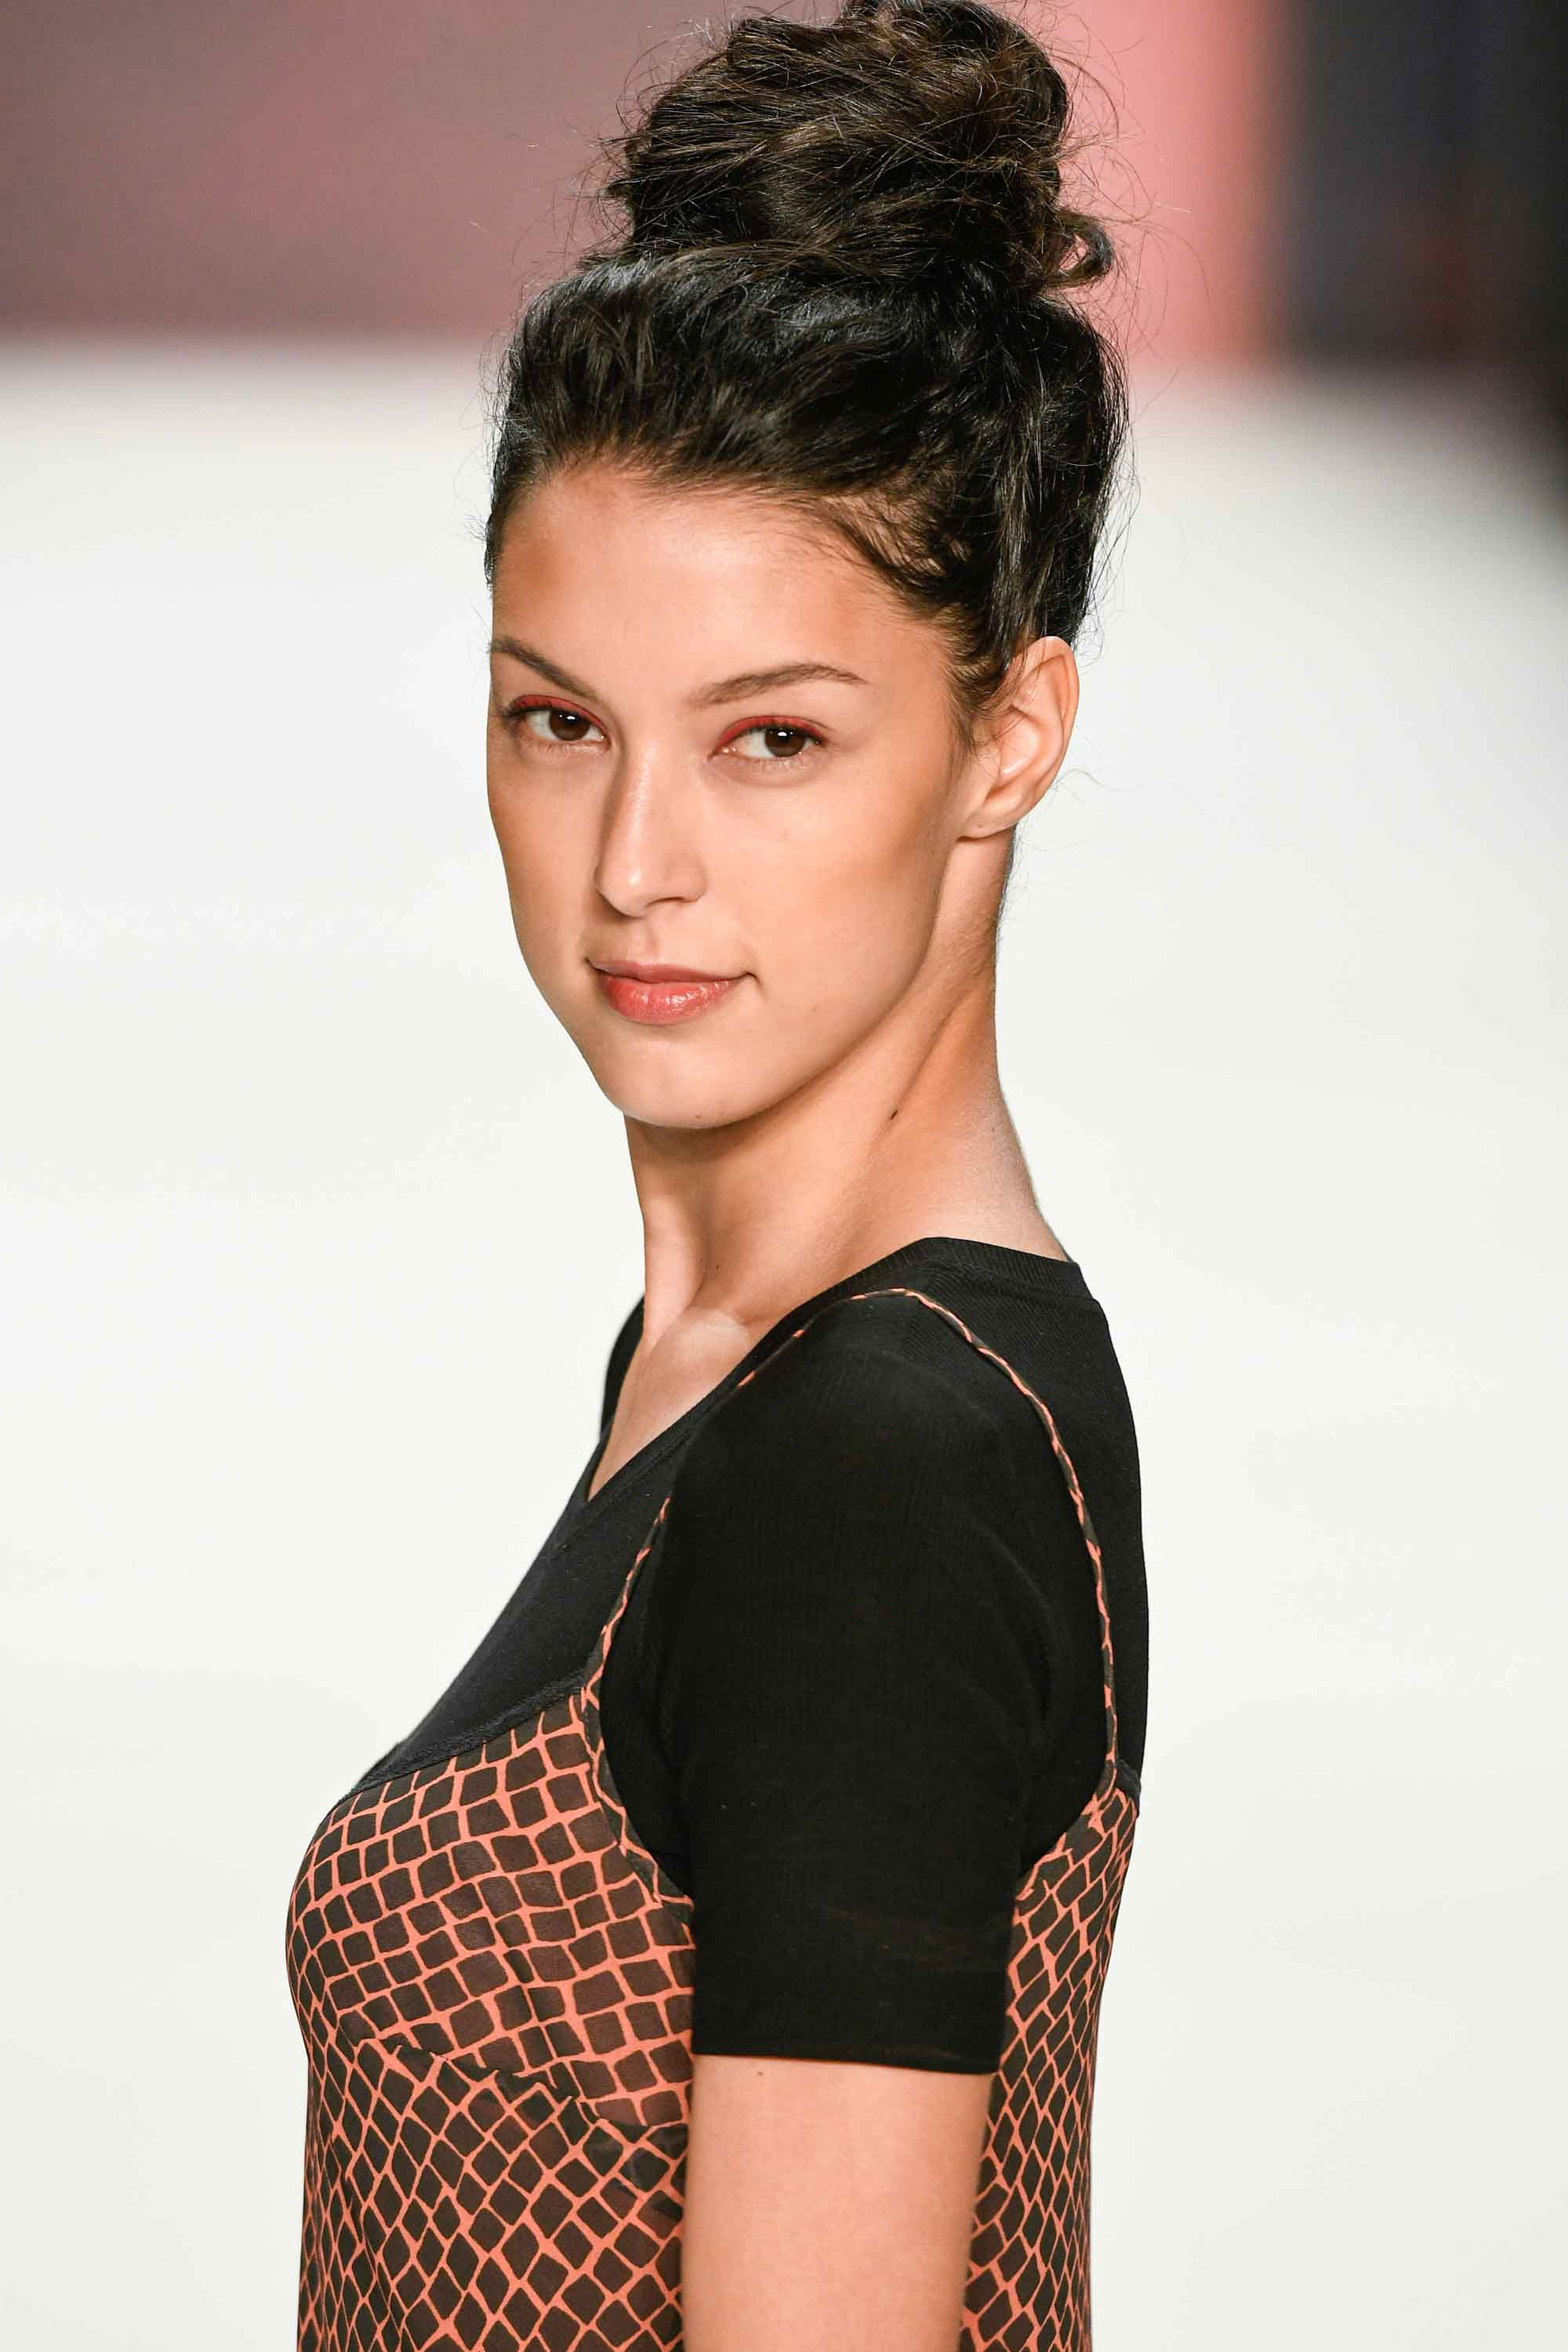 easy bun hairstyles: woman on runway with brown hair styled in a high messy bun hairstyle